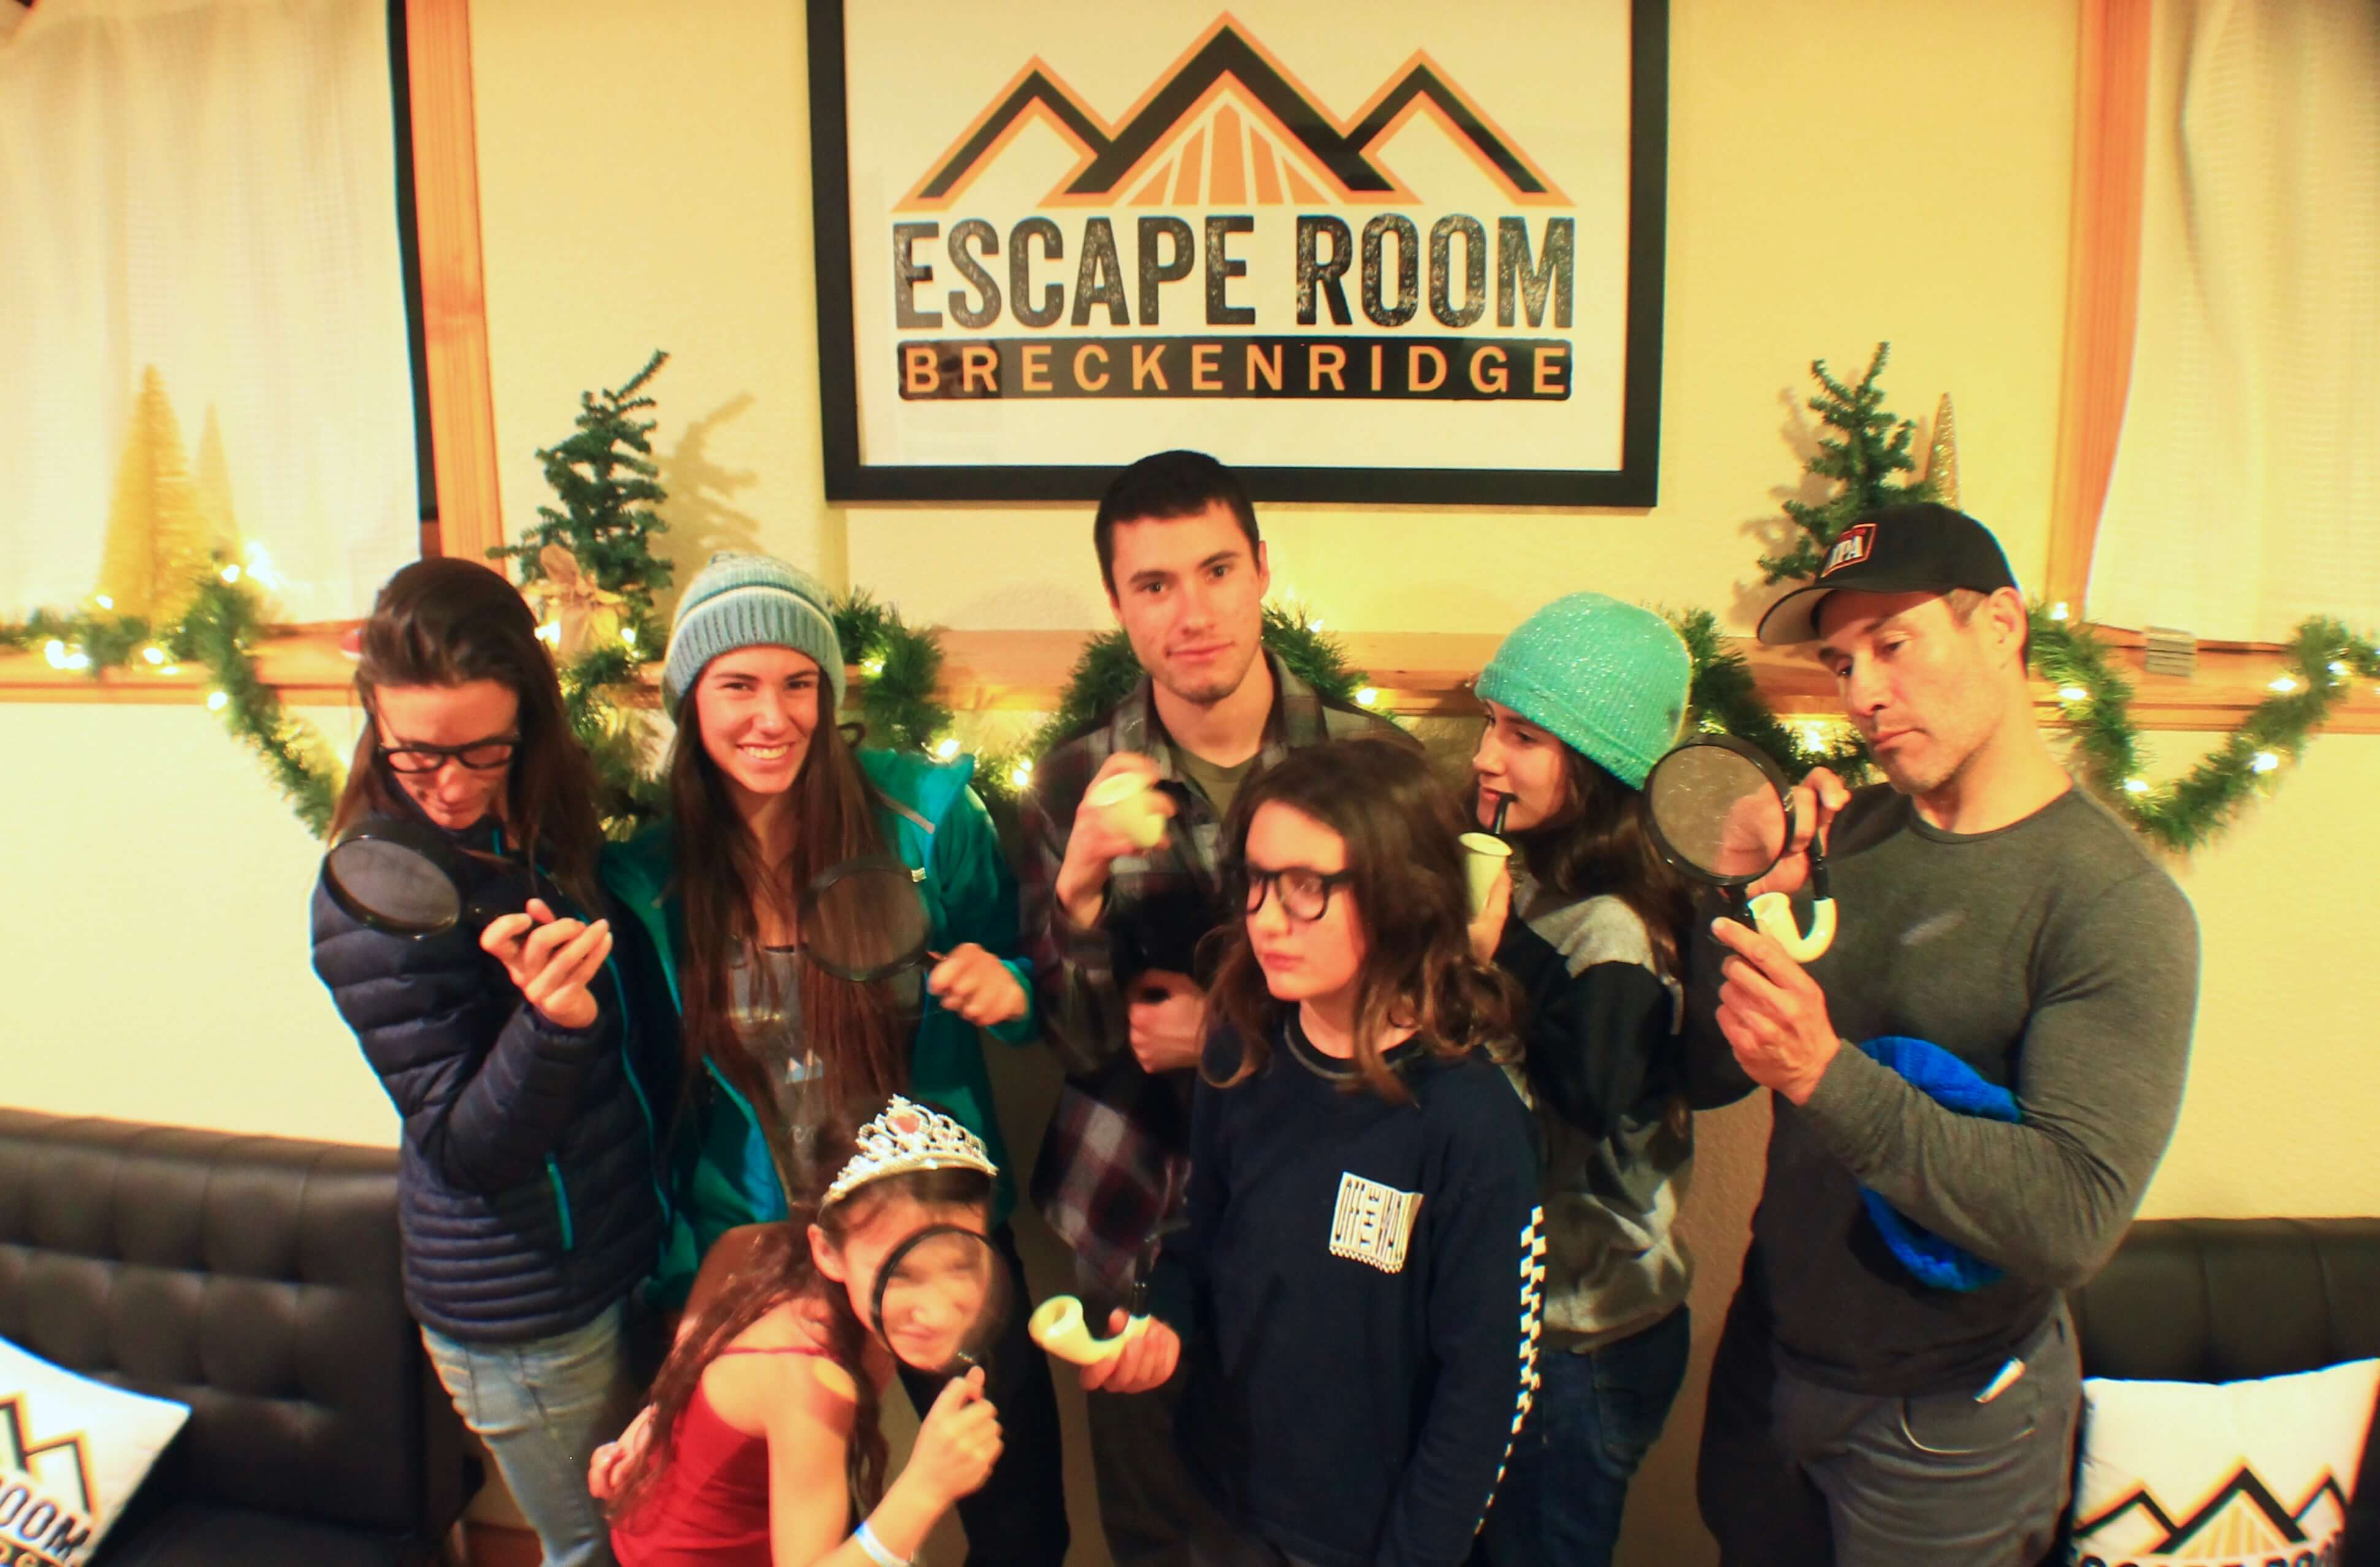 Escape Room, Things to do in Summit County in Winter